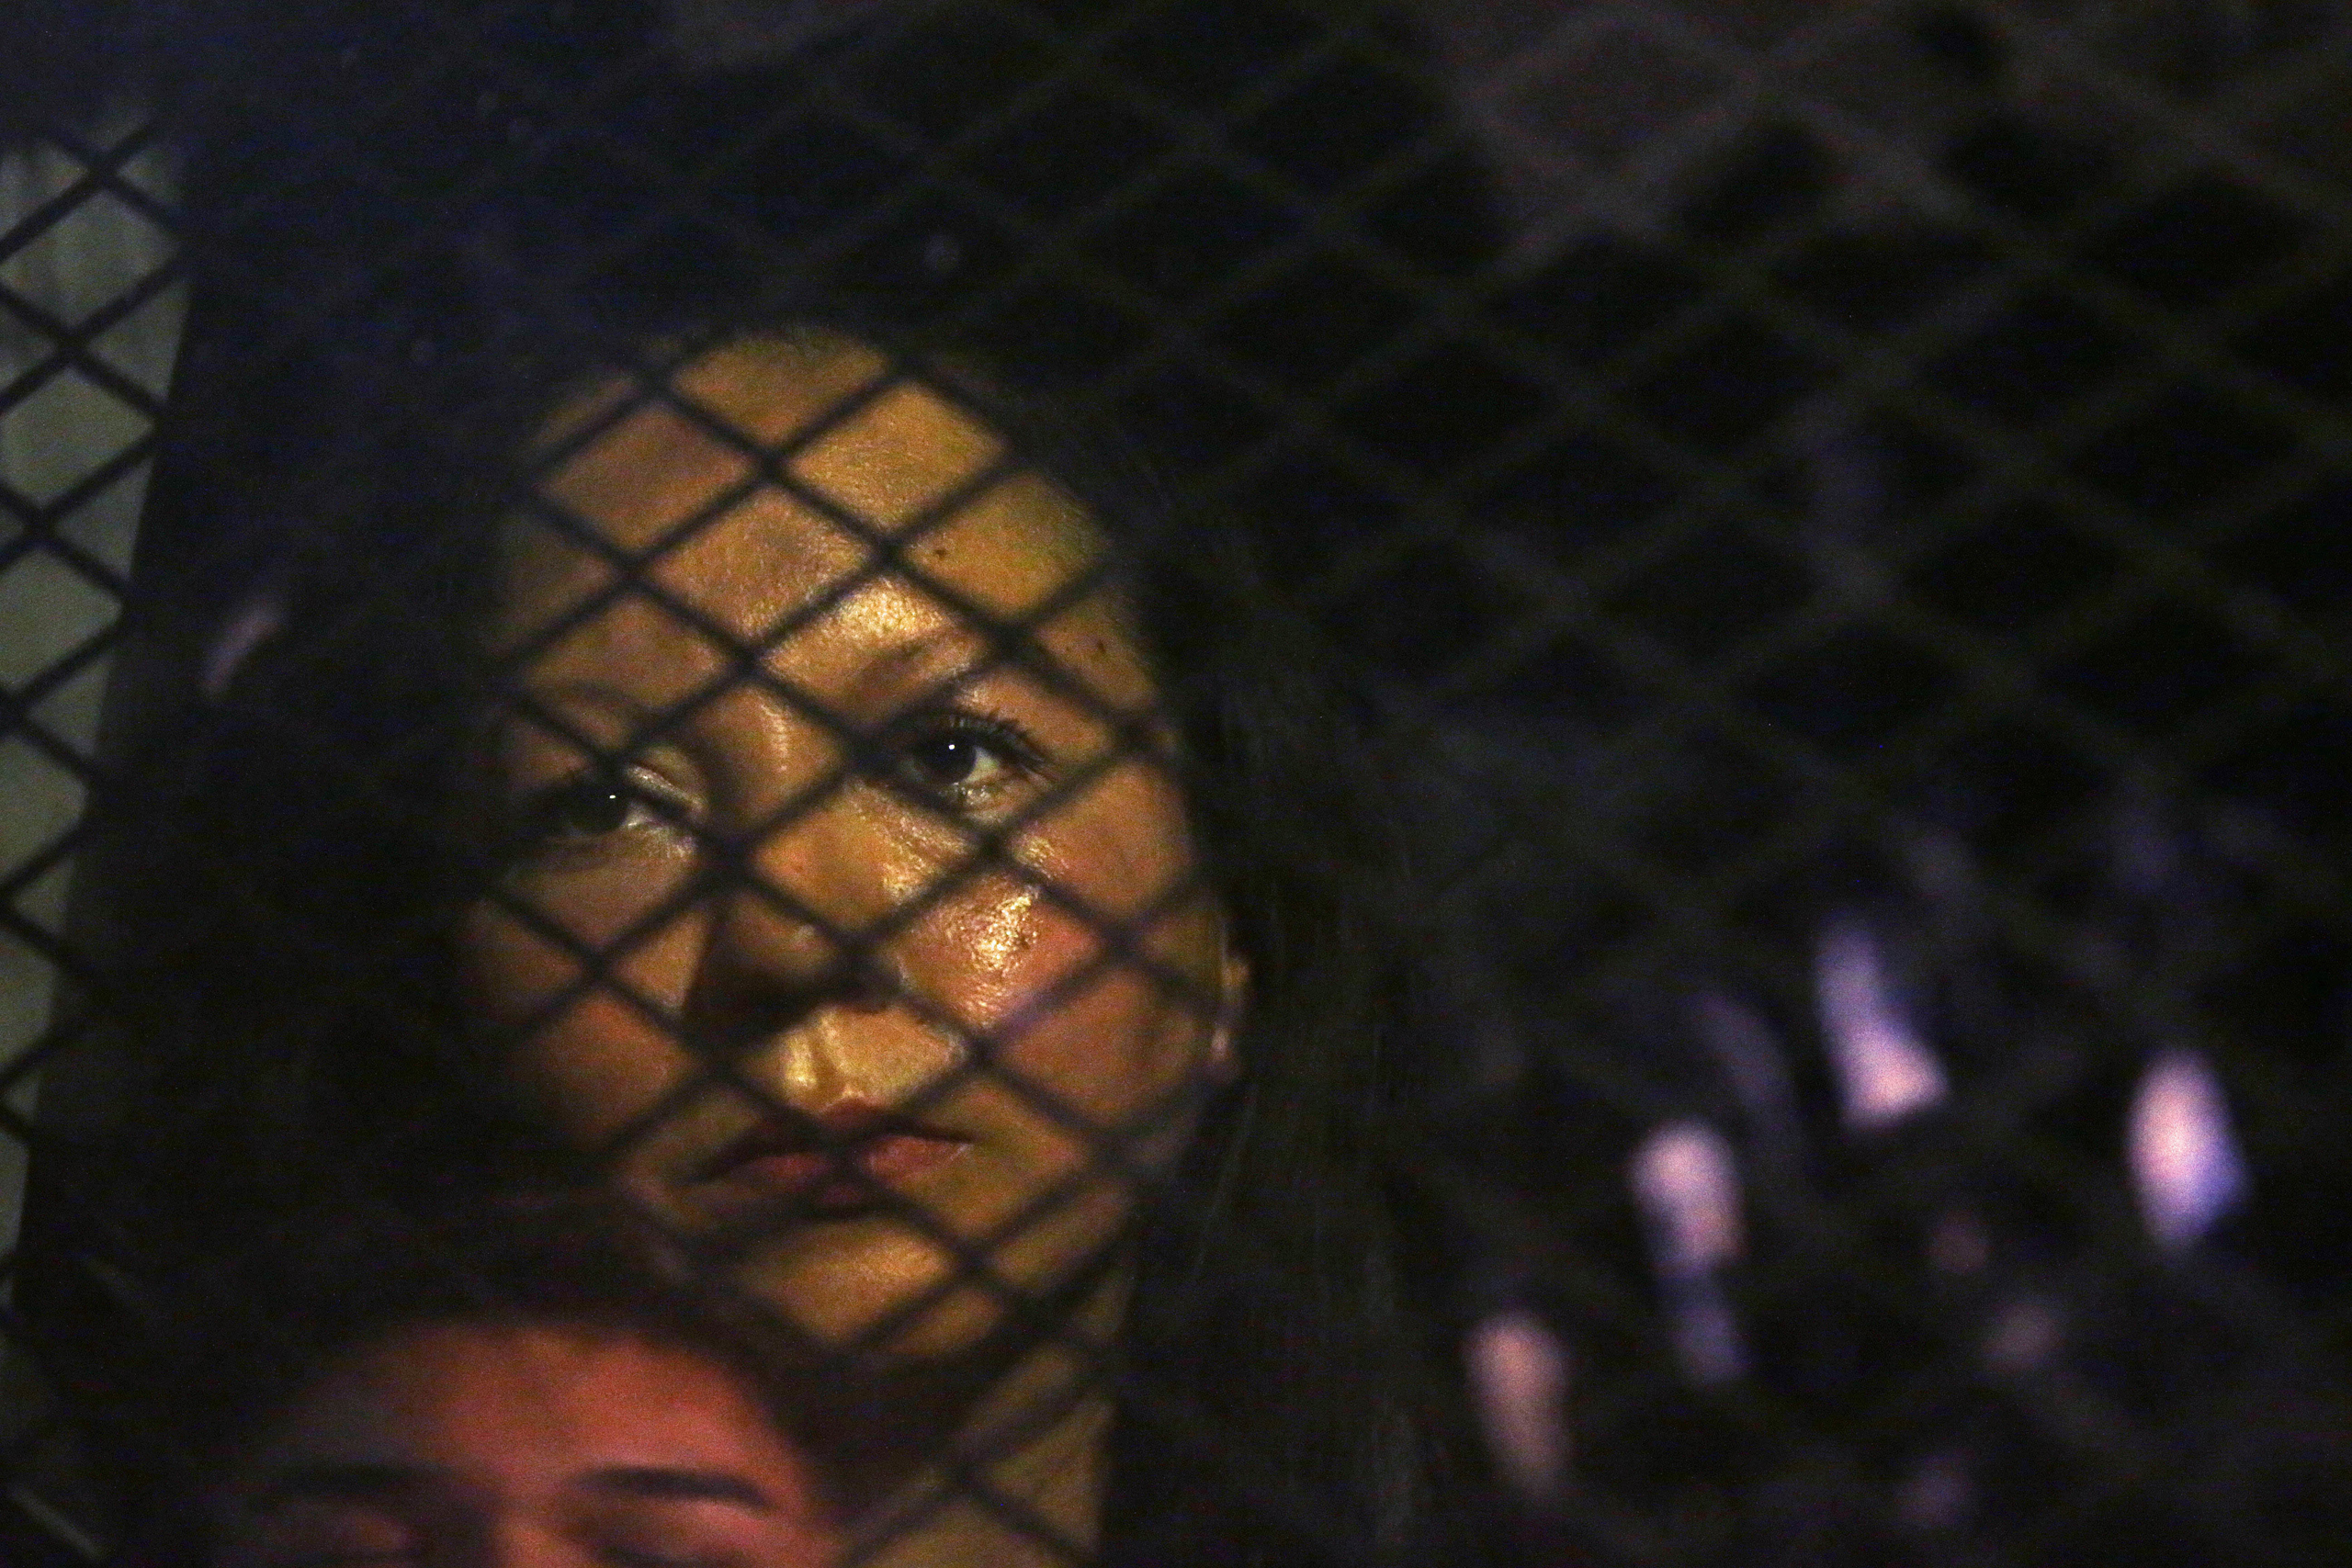 Guadalupe Garcia de Rayos is locked in a van that is stopped in the street by protesters outside the Immigration and Customs Enforcement facility in Phoenix on Feb. 8, 2017. Apparently fearing her deportation, activists blocked the gates surrounding the office near central Phoenix in what the Arizona Republic says was an effort to block several vans and a bus inside from leaving.